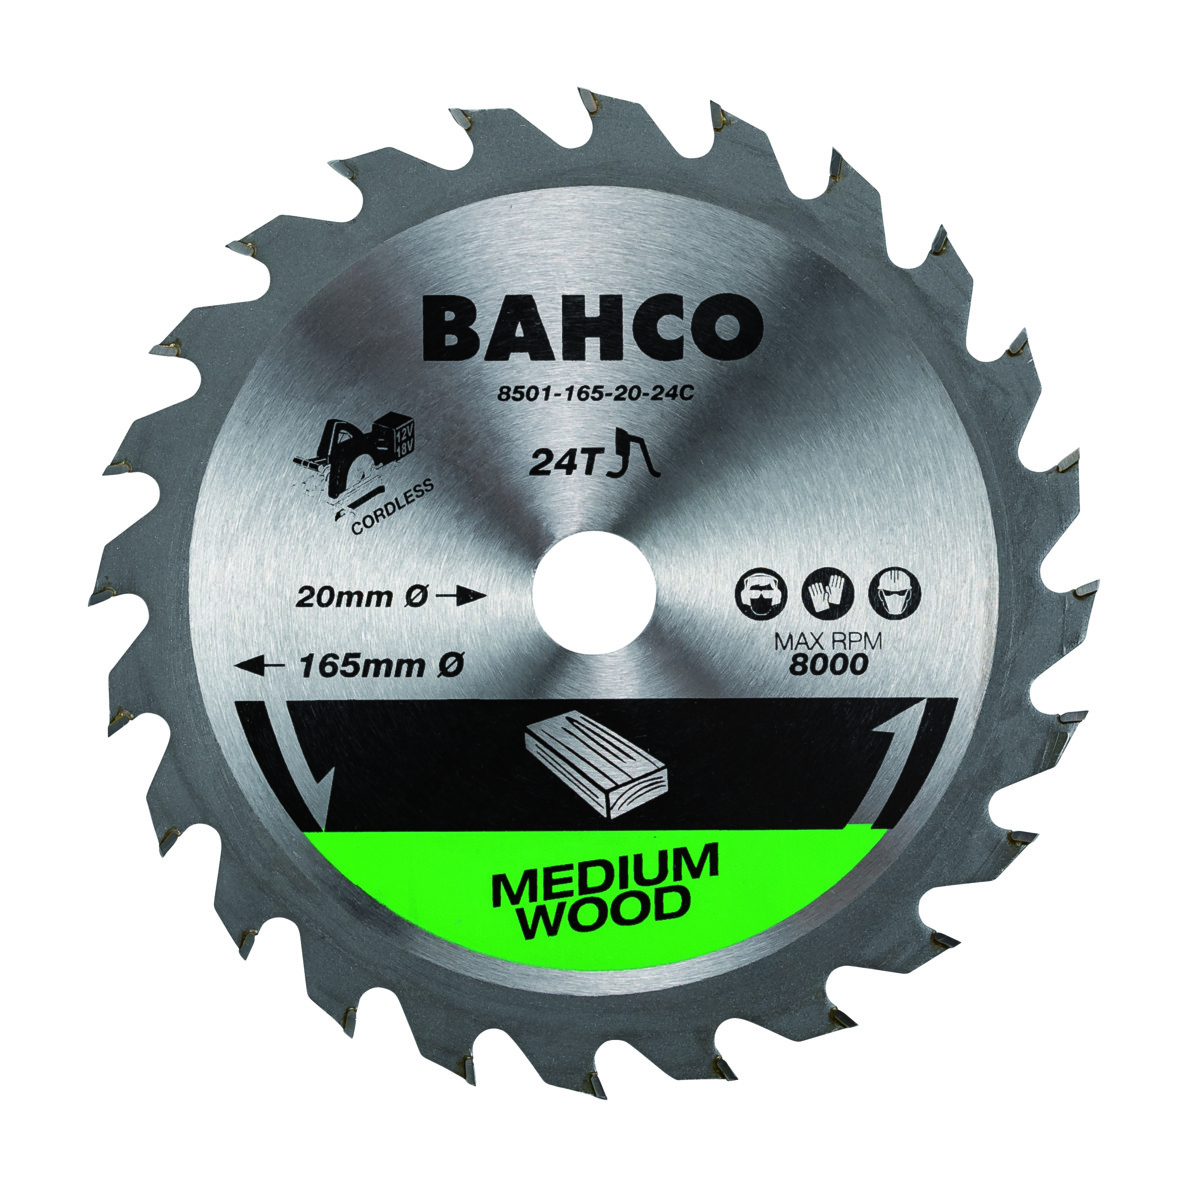 Circular saw blade for cordless saw machines 136x10mm 24T for wood